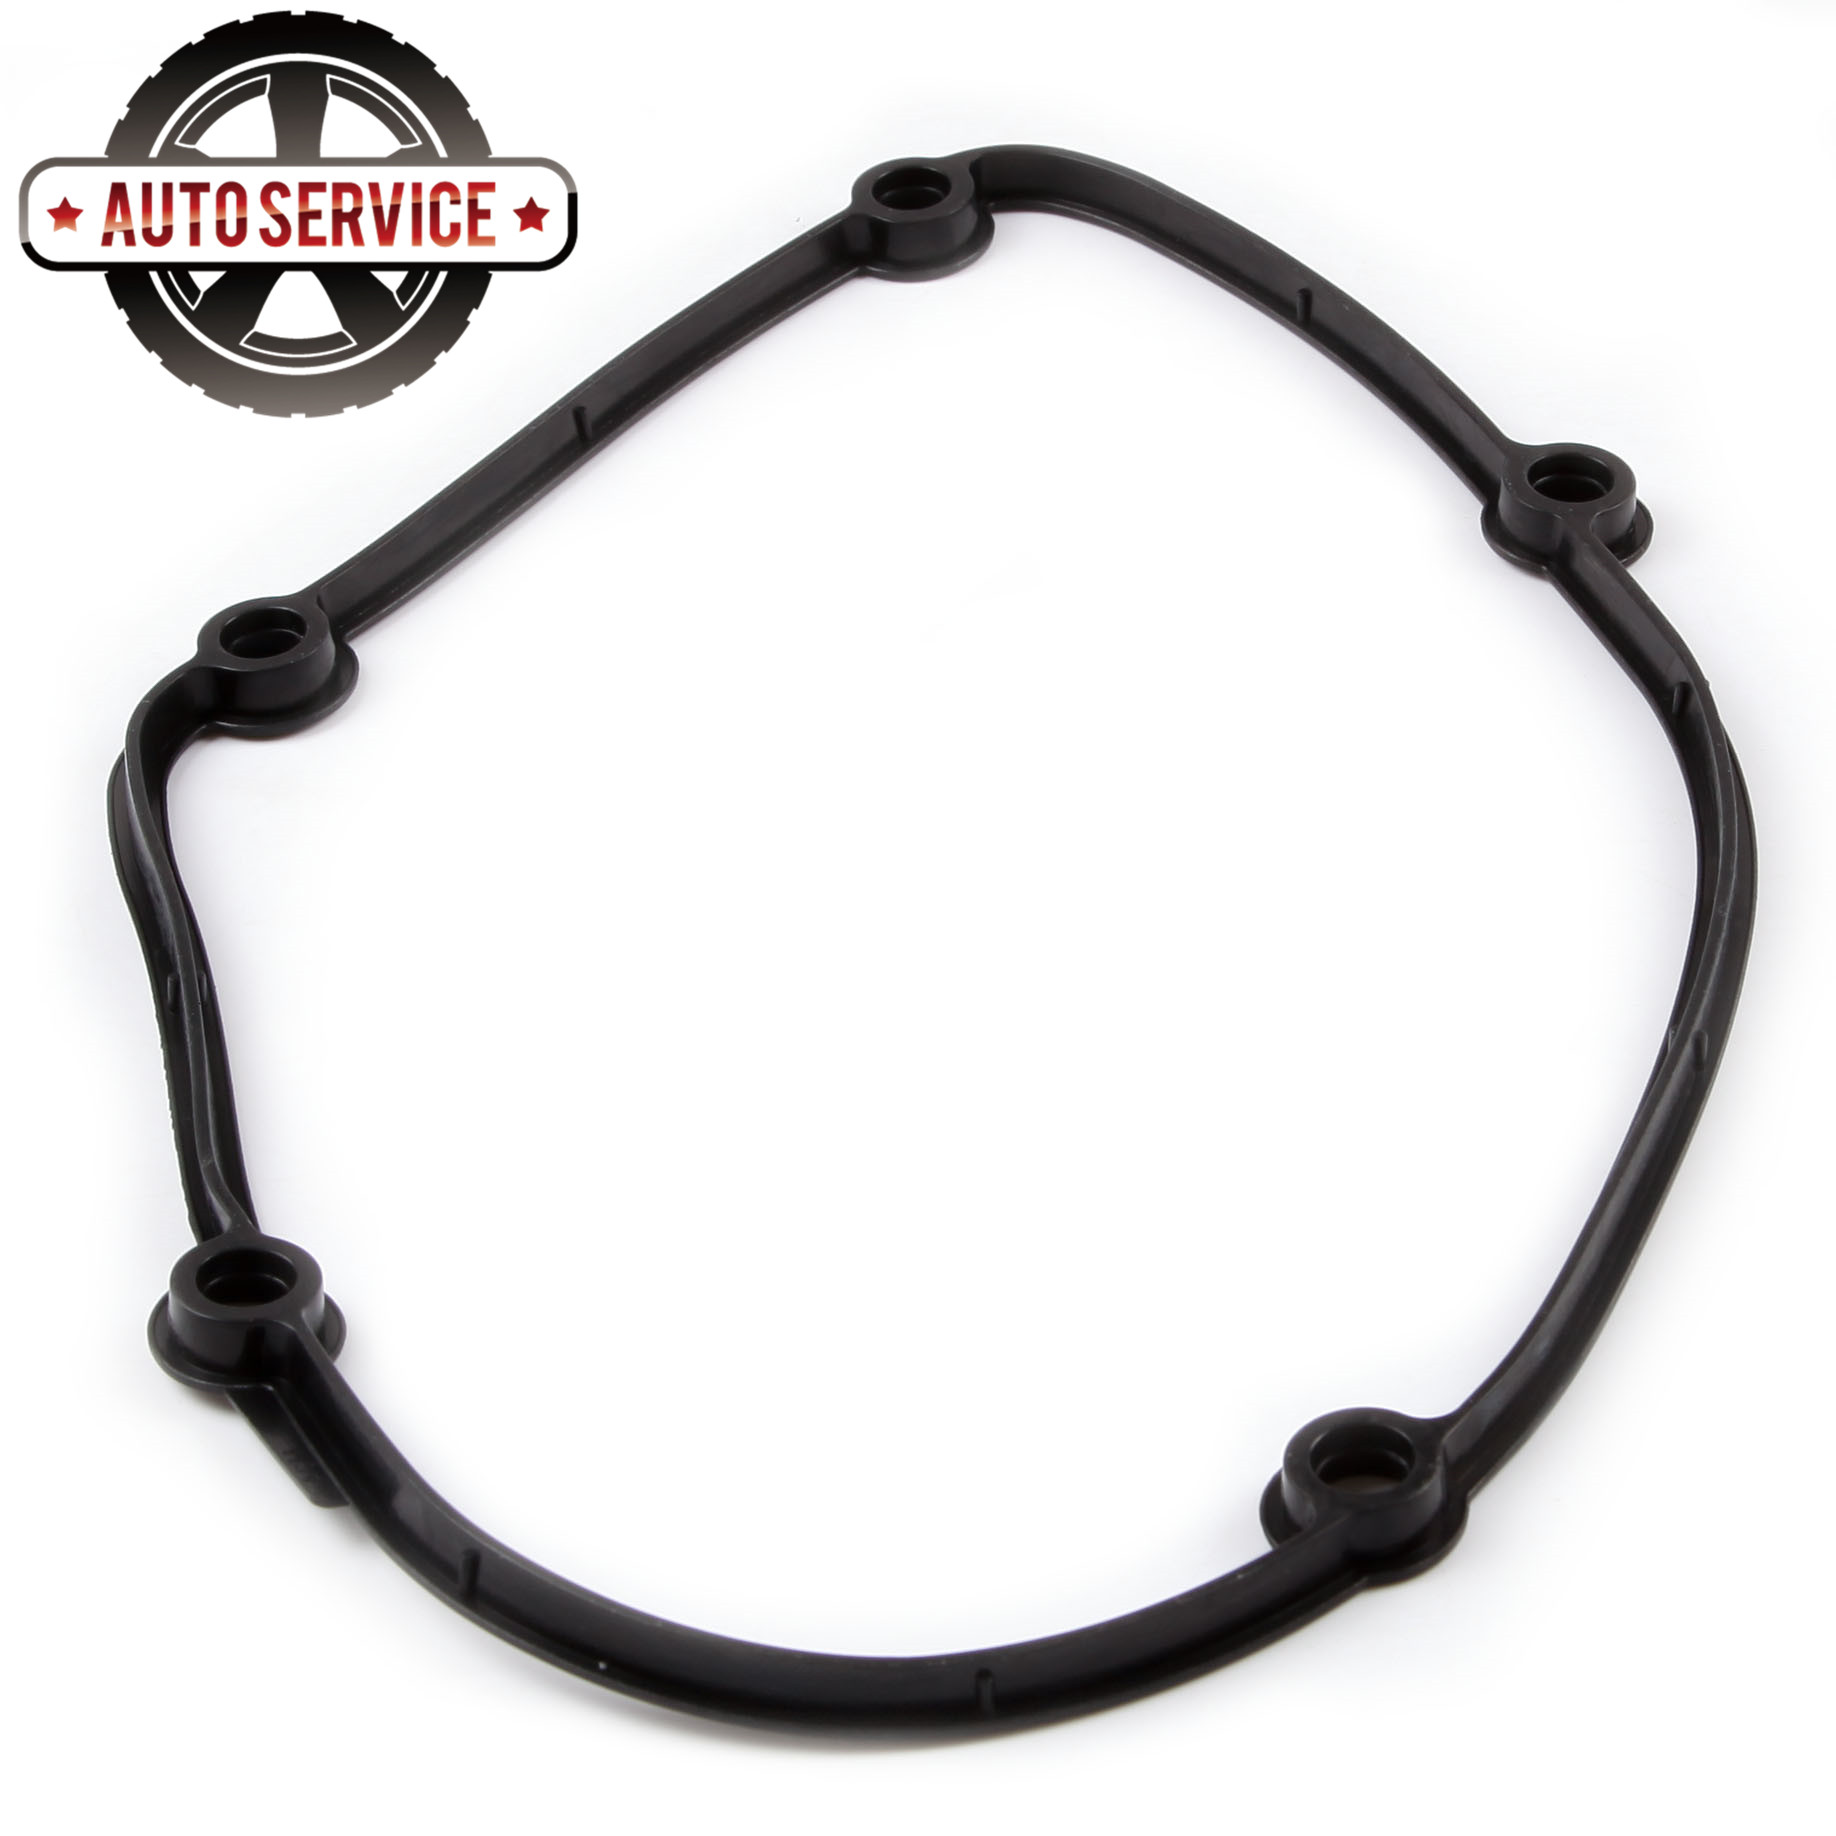 Upper Timing Chain Cover Gasket 06H 103 483 C Fit For VW Passat Audi A3 A4